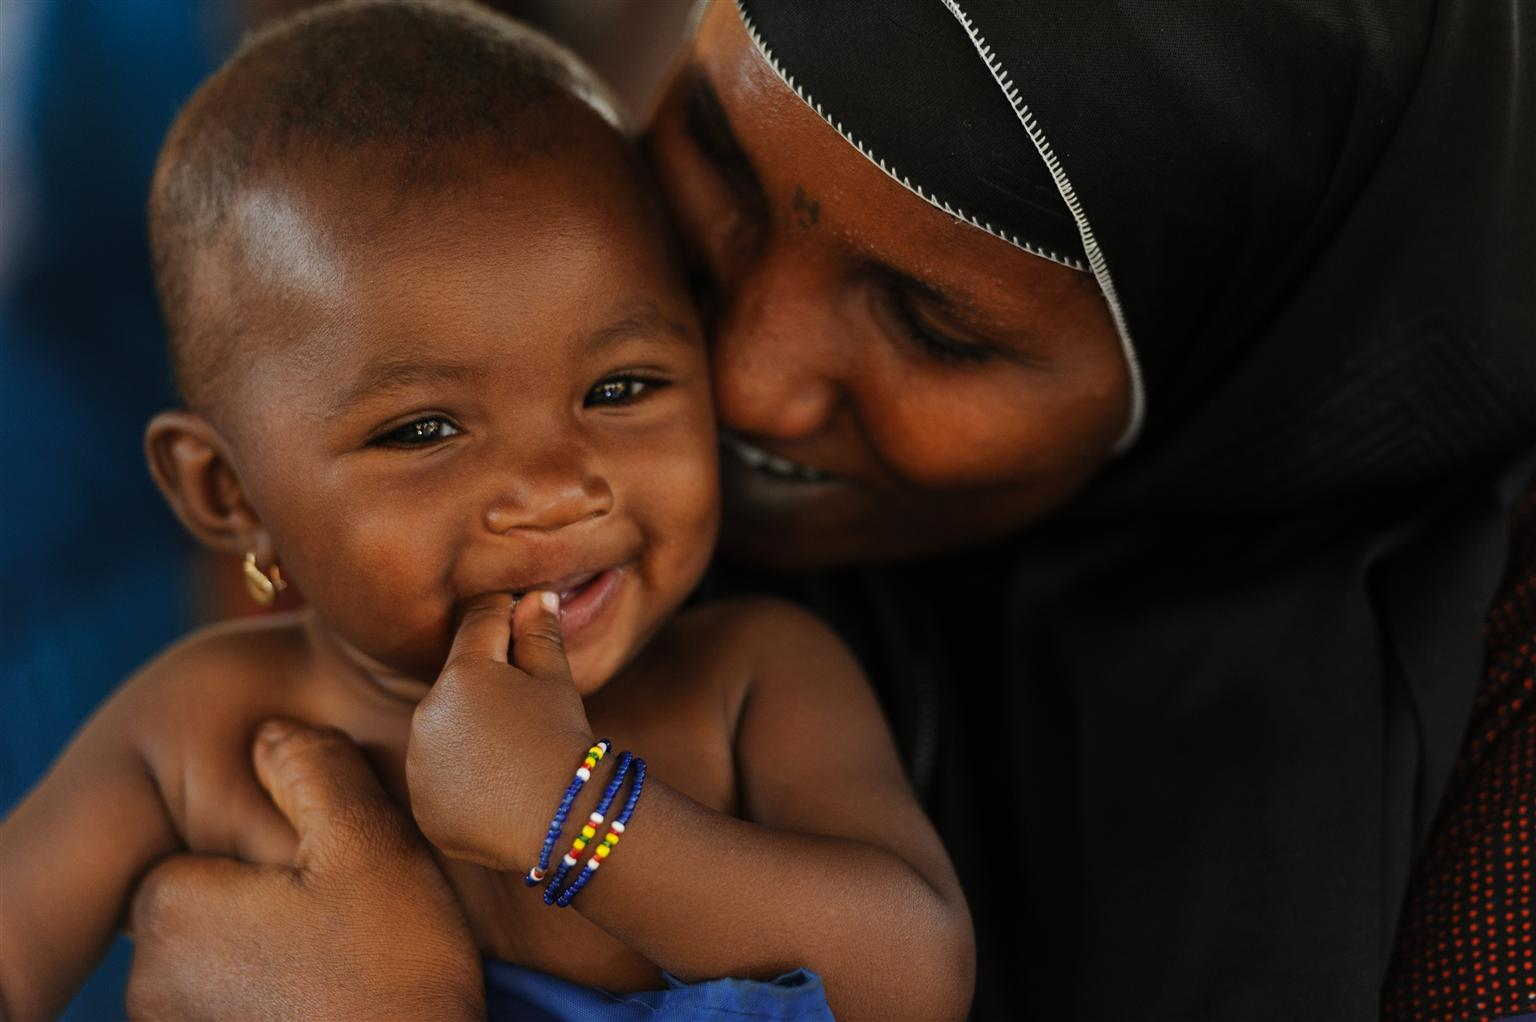 Six-month-old Maniratou, held by her mother, Habsatou Salou, smiles after a nutrition screening at a health centre in Niamey, Niger.